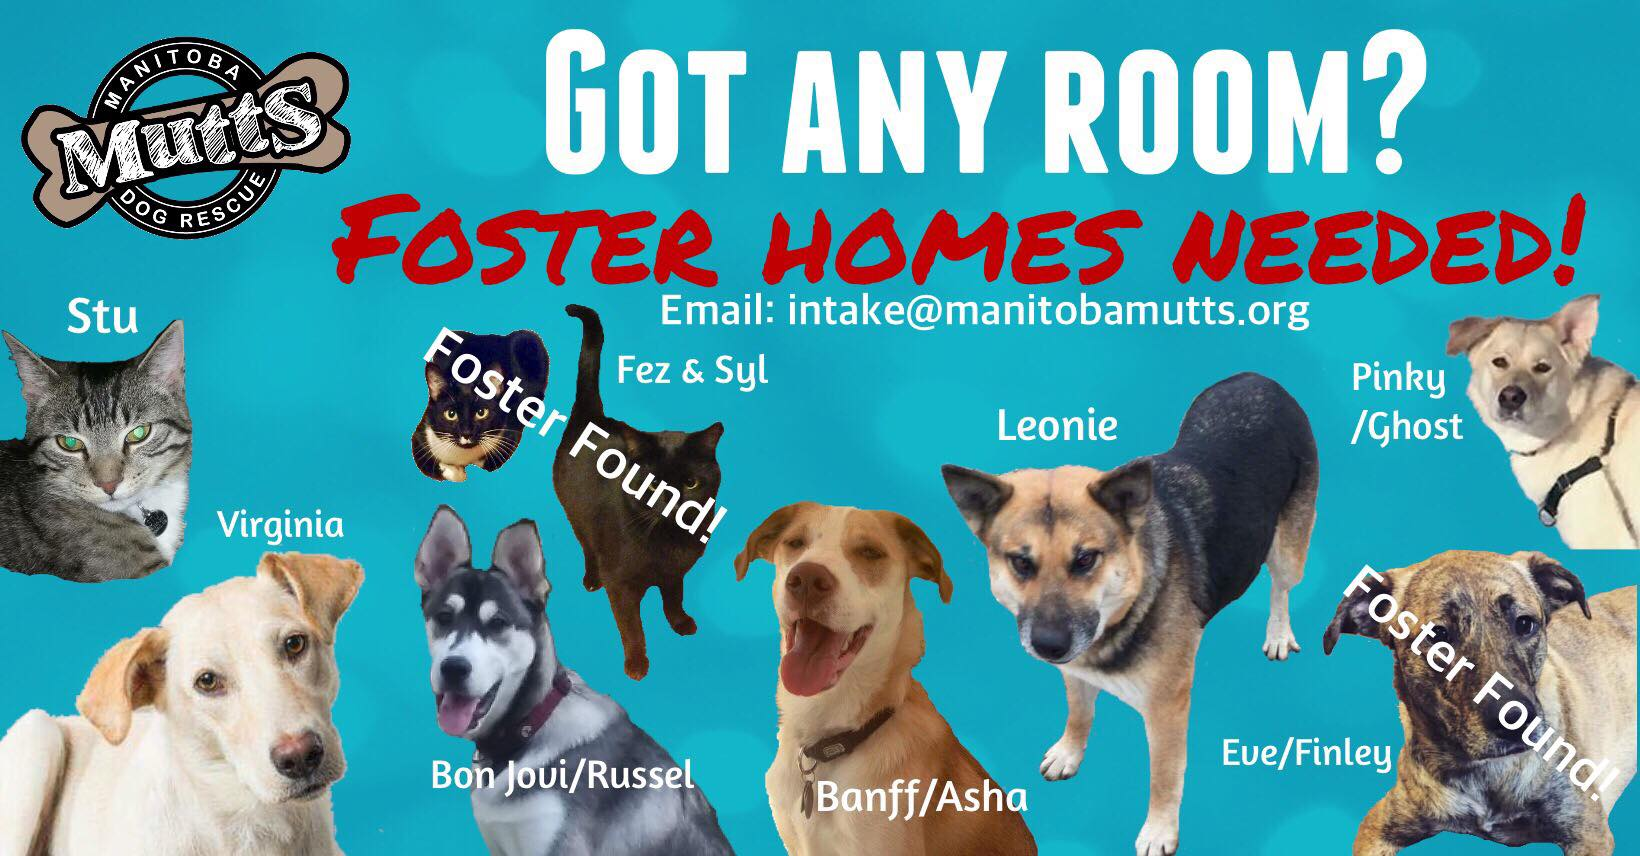 Foster-Homes-Needed-Jan-2018